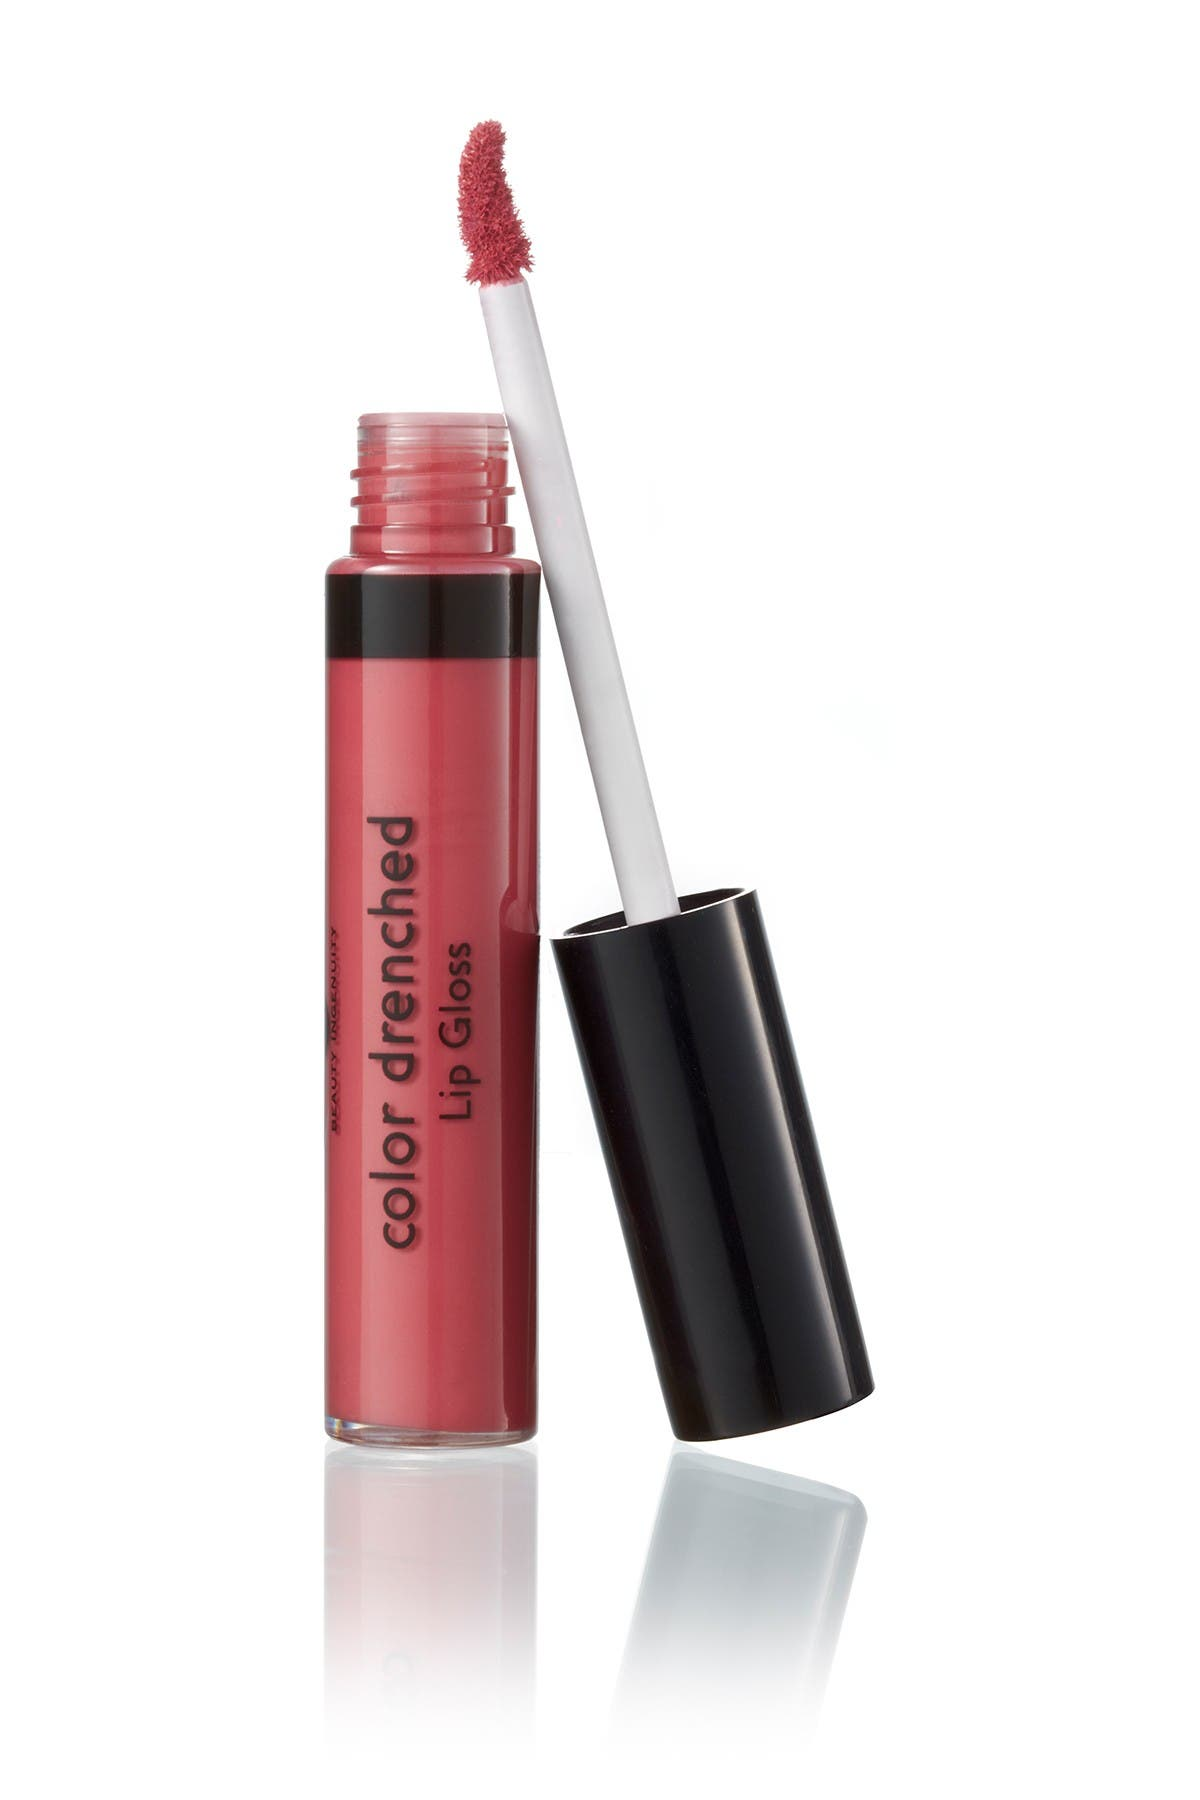 Image of Laura Geller New York Color Drenched Lip Gloss - Perked Up Pink